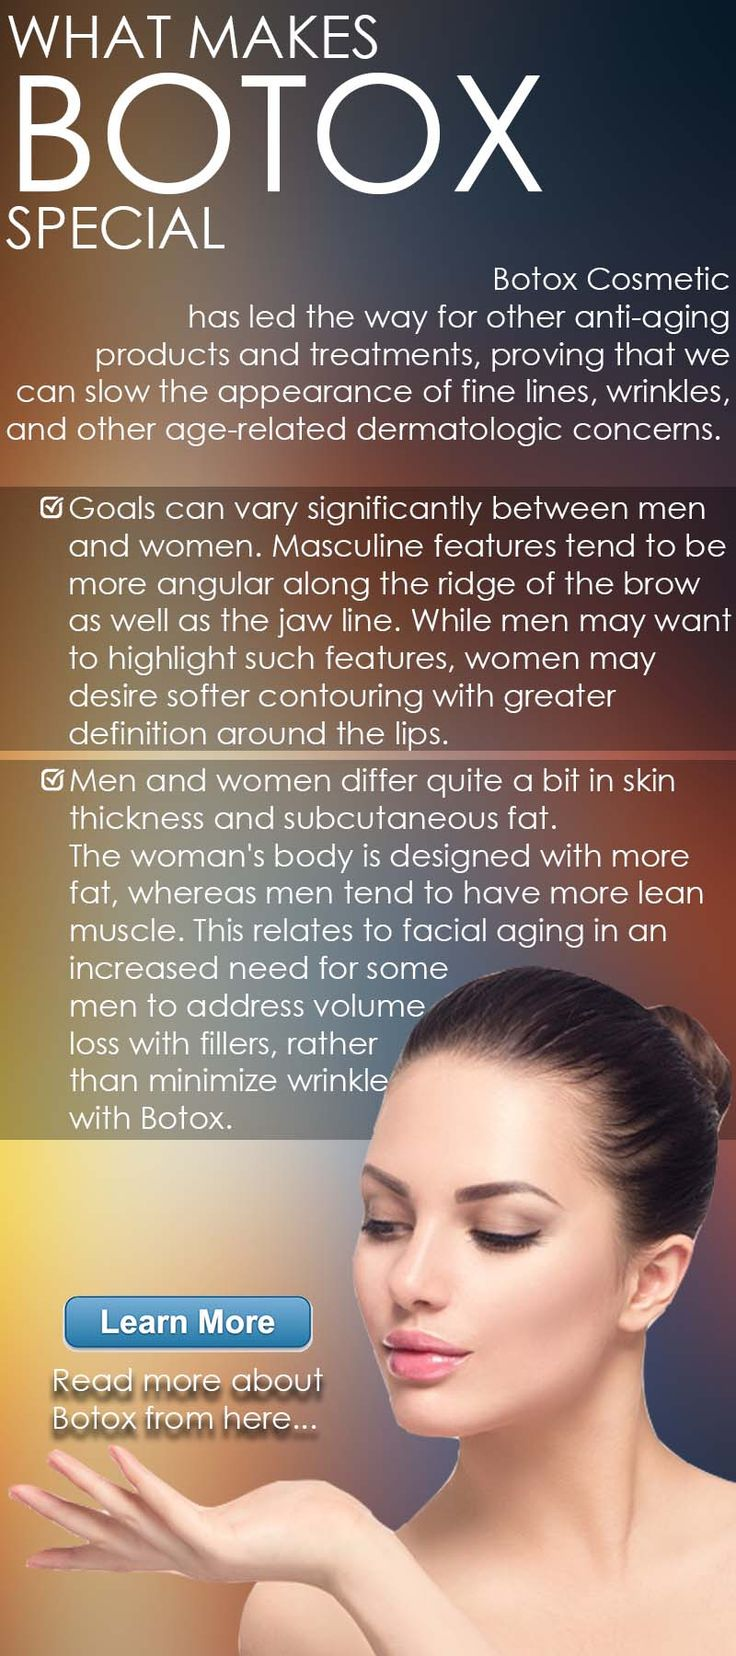 #Botox treatments at Thrive near #LakeOswego offer benefits to men and #women of all ages. Schedule your consultation for younger looking #skin at 855-810-8552. #dermatology #skincare #beauty